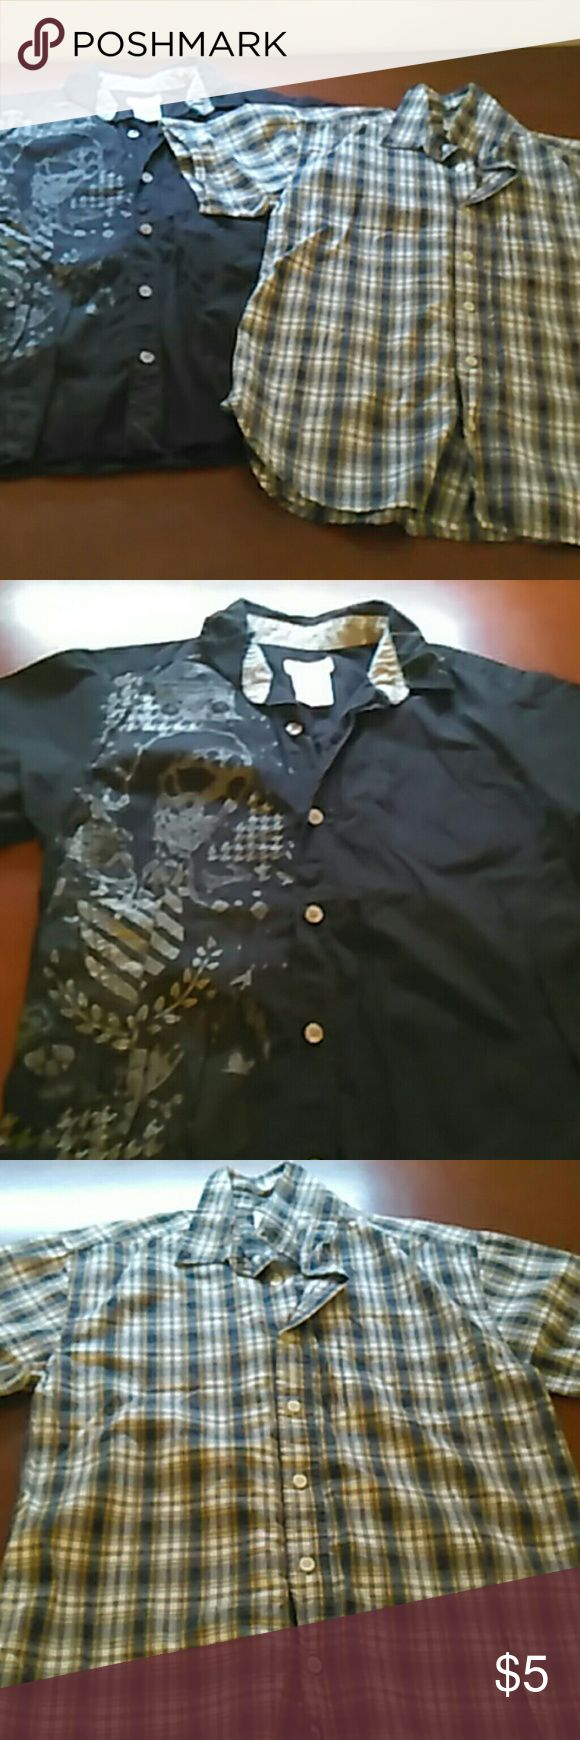 Bundle of 2 boys short sleeve dress shirts Black with skeleton route 66 size 10/12 boys dress shirt, and a plaid old Navy boy's size 12 dress shirt Shirts & Tops